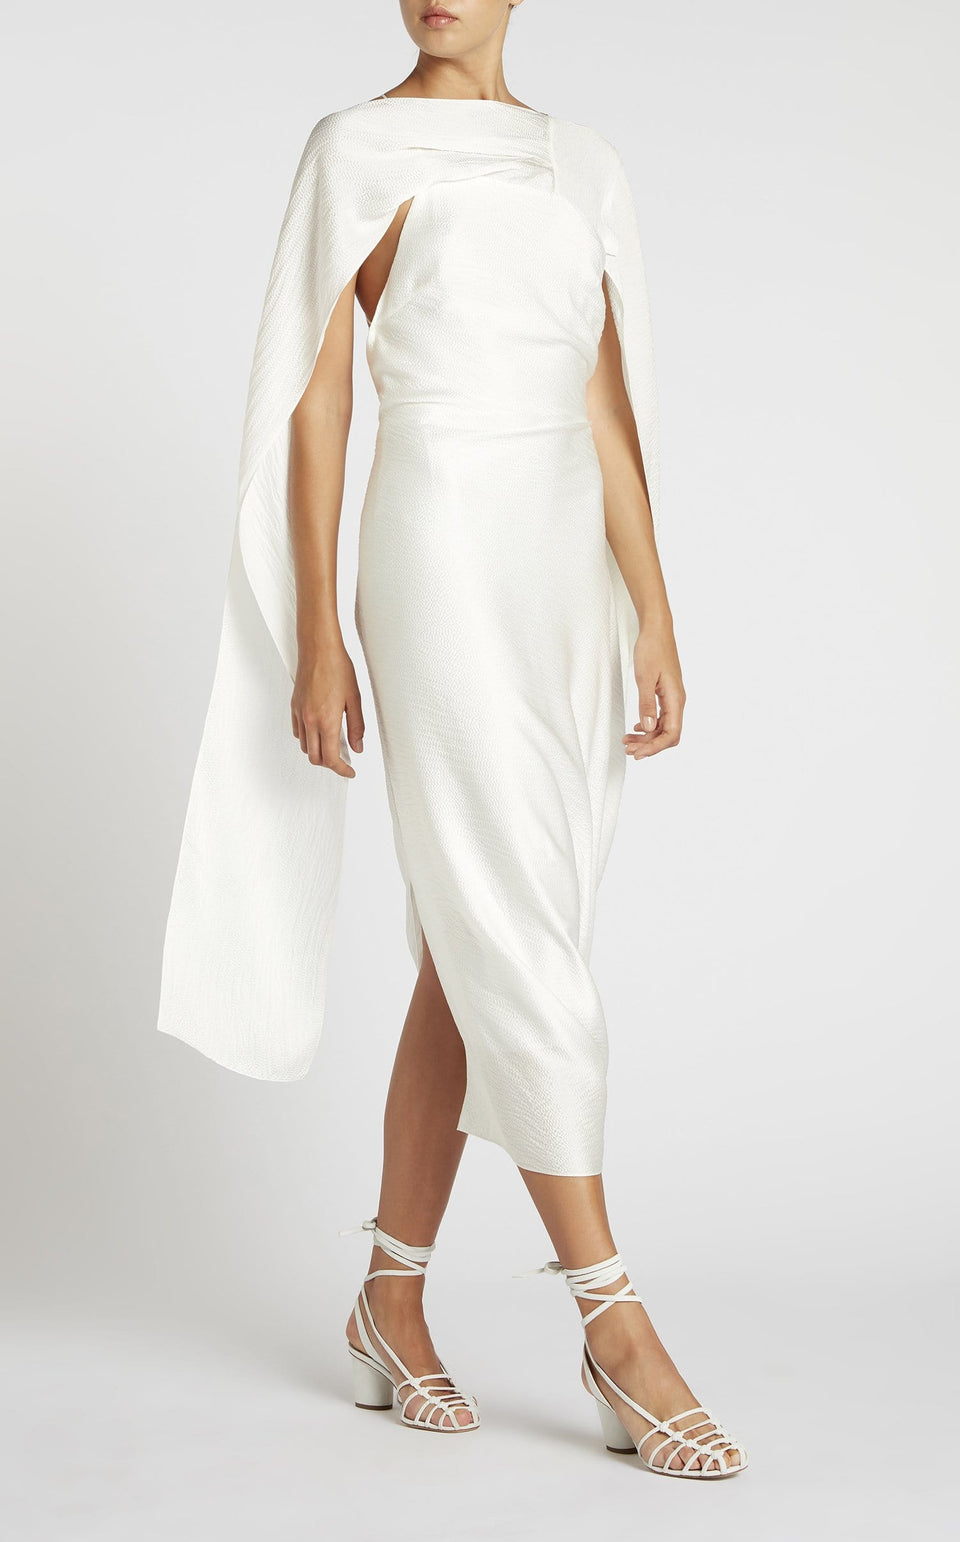 Lillico Dress In White from Roland Mouret